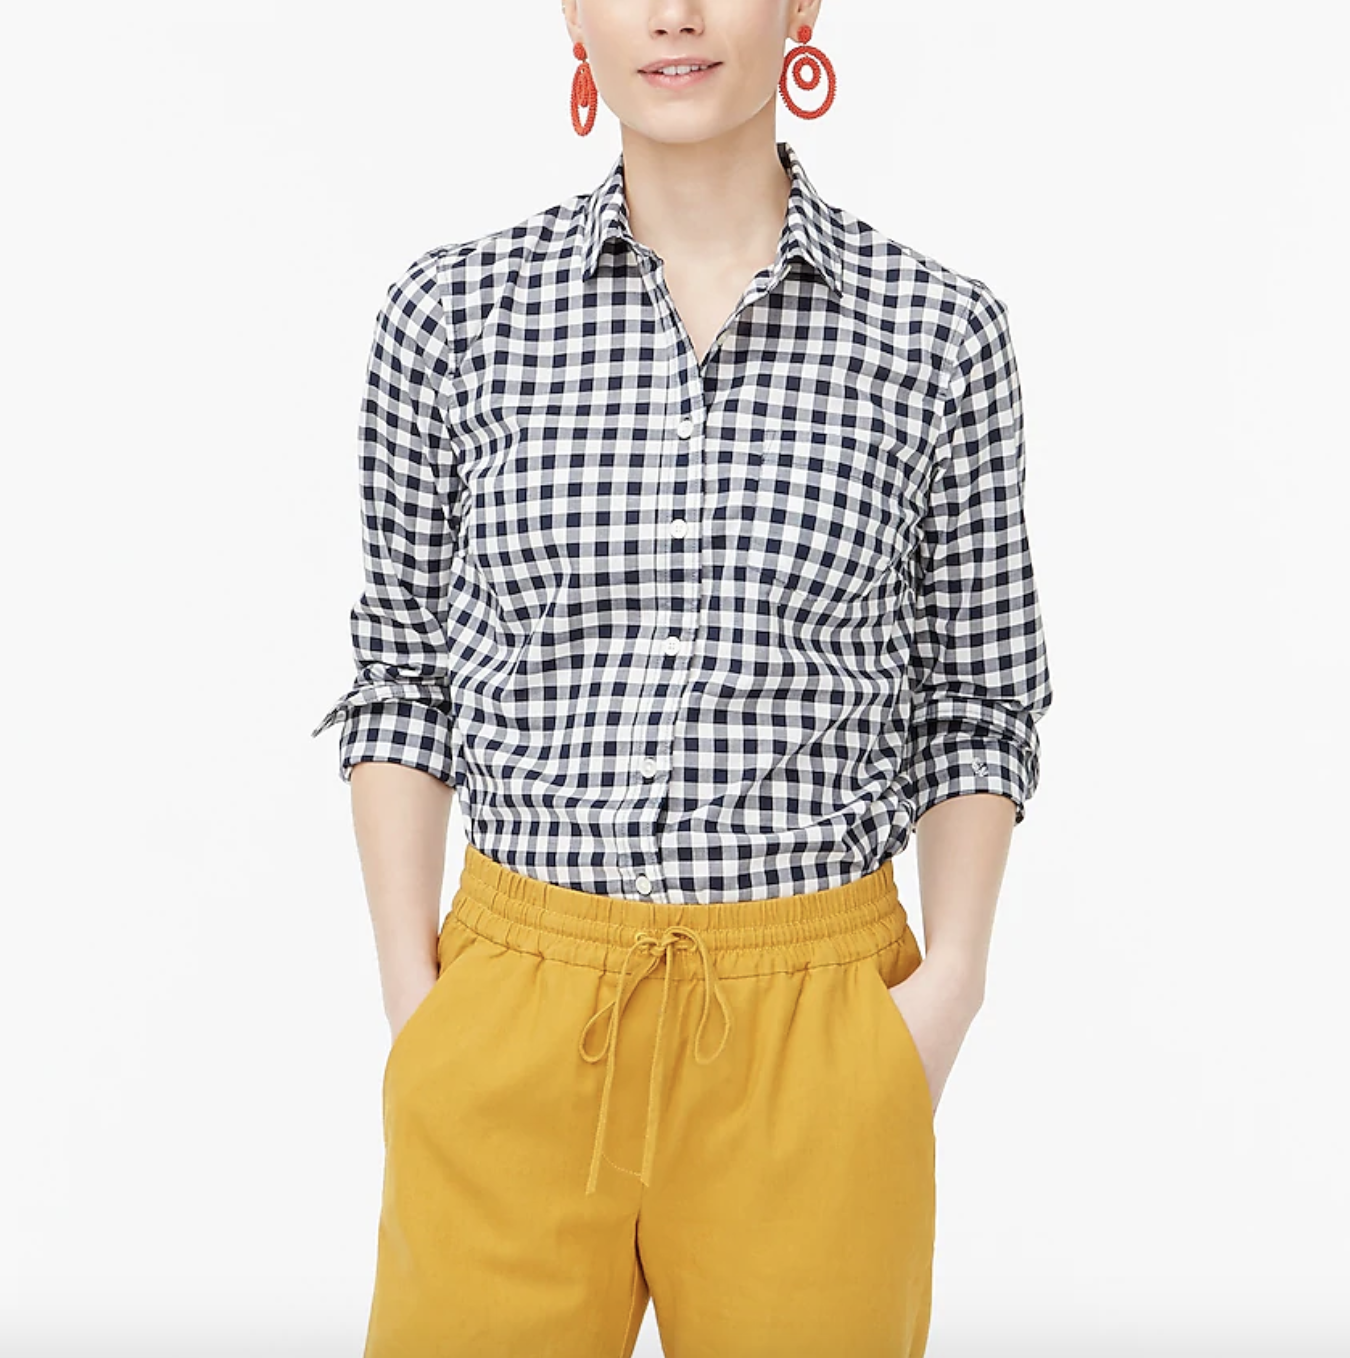 A model wearing the shirt with yellow pants